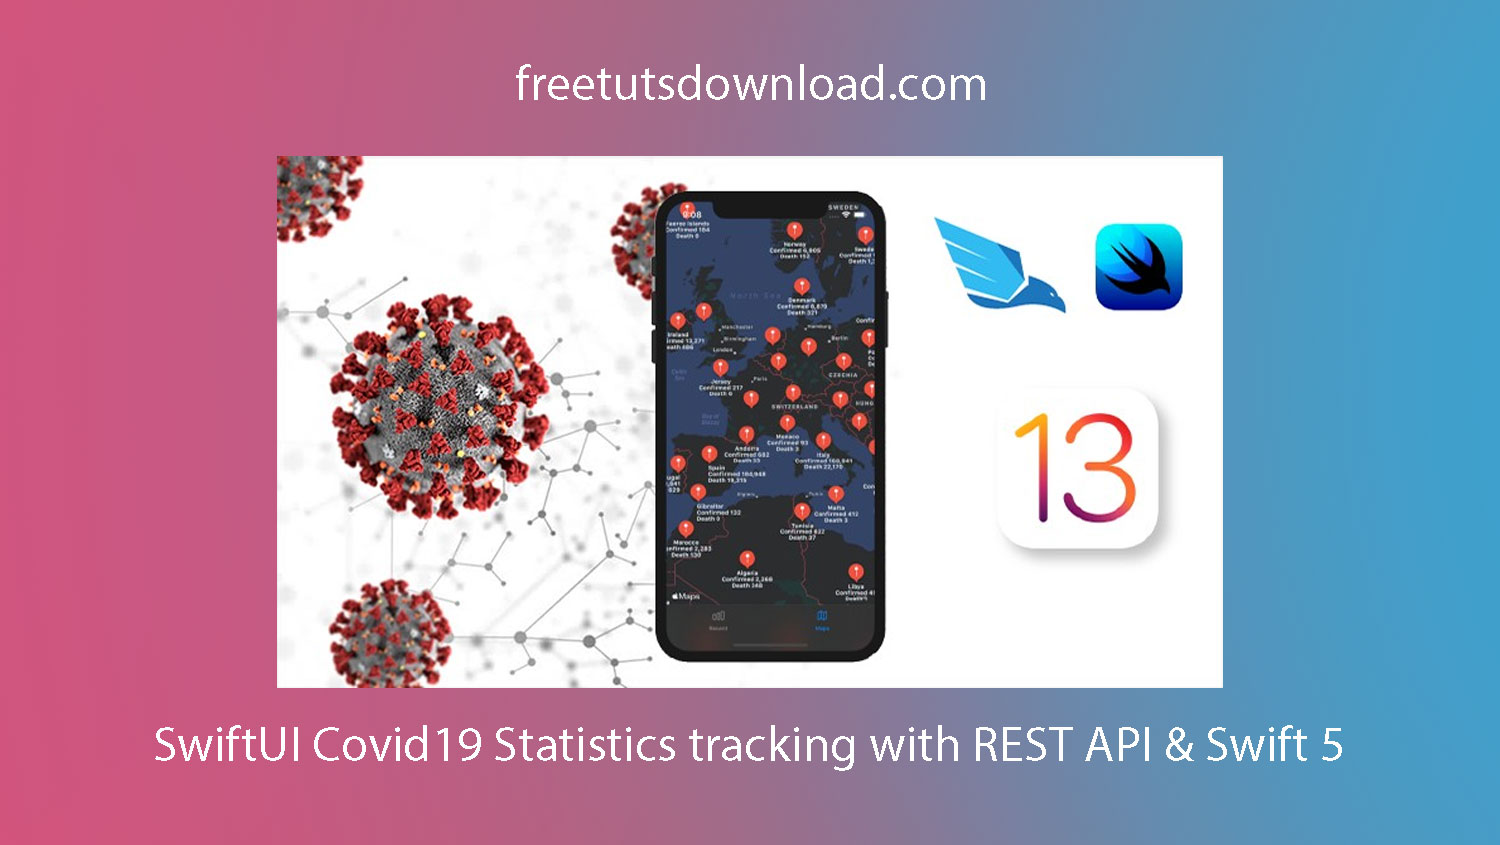 SwiftUI Covid19 Statistics tracking with REST API & Swift 5